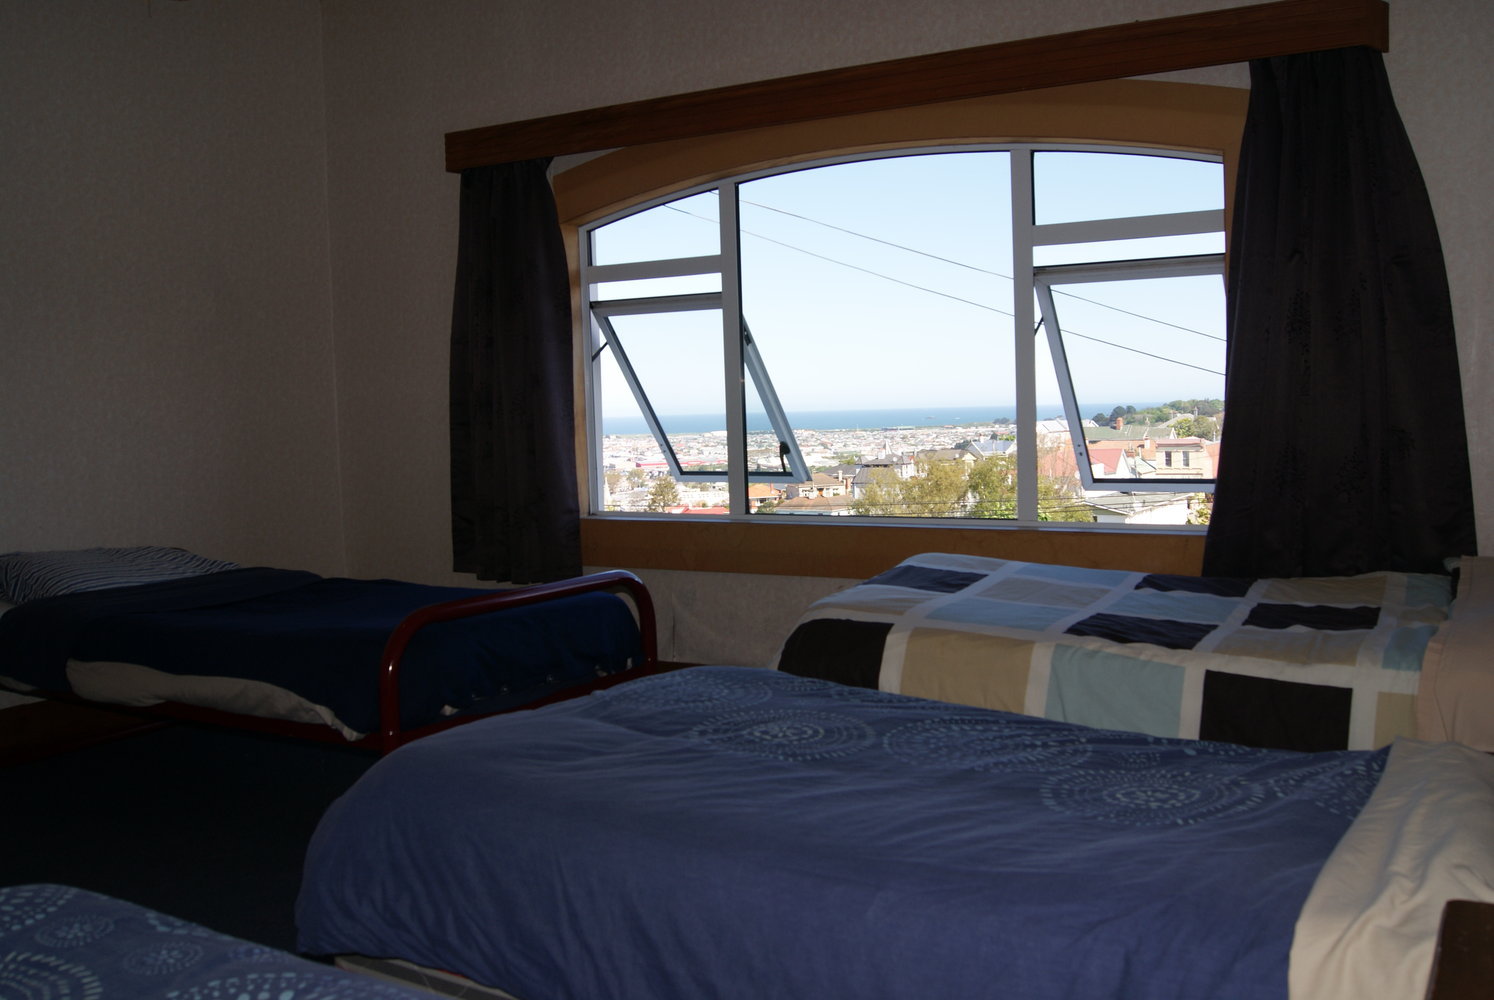 5-Bed Share room (with views of Pacific Ocean)